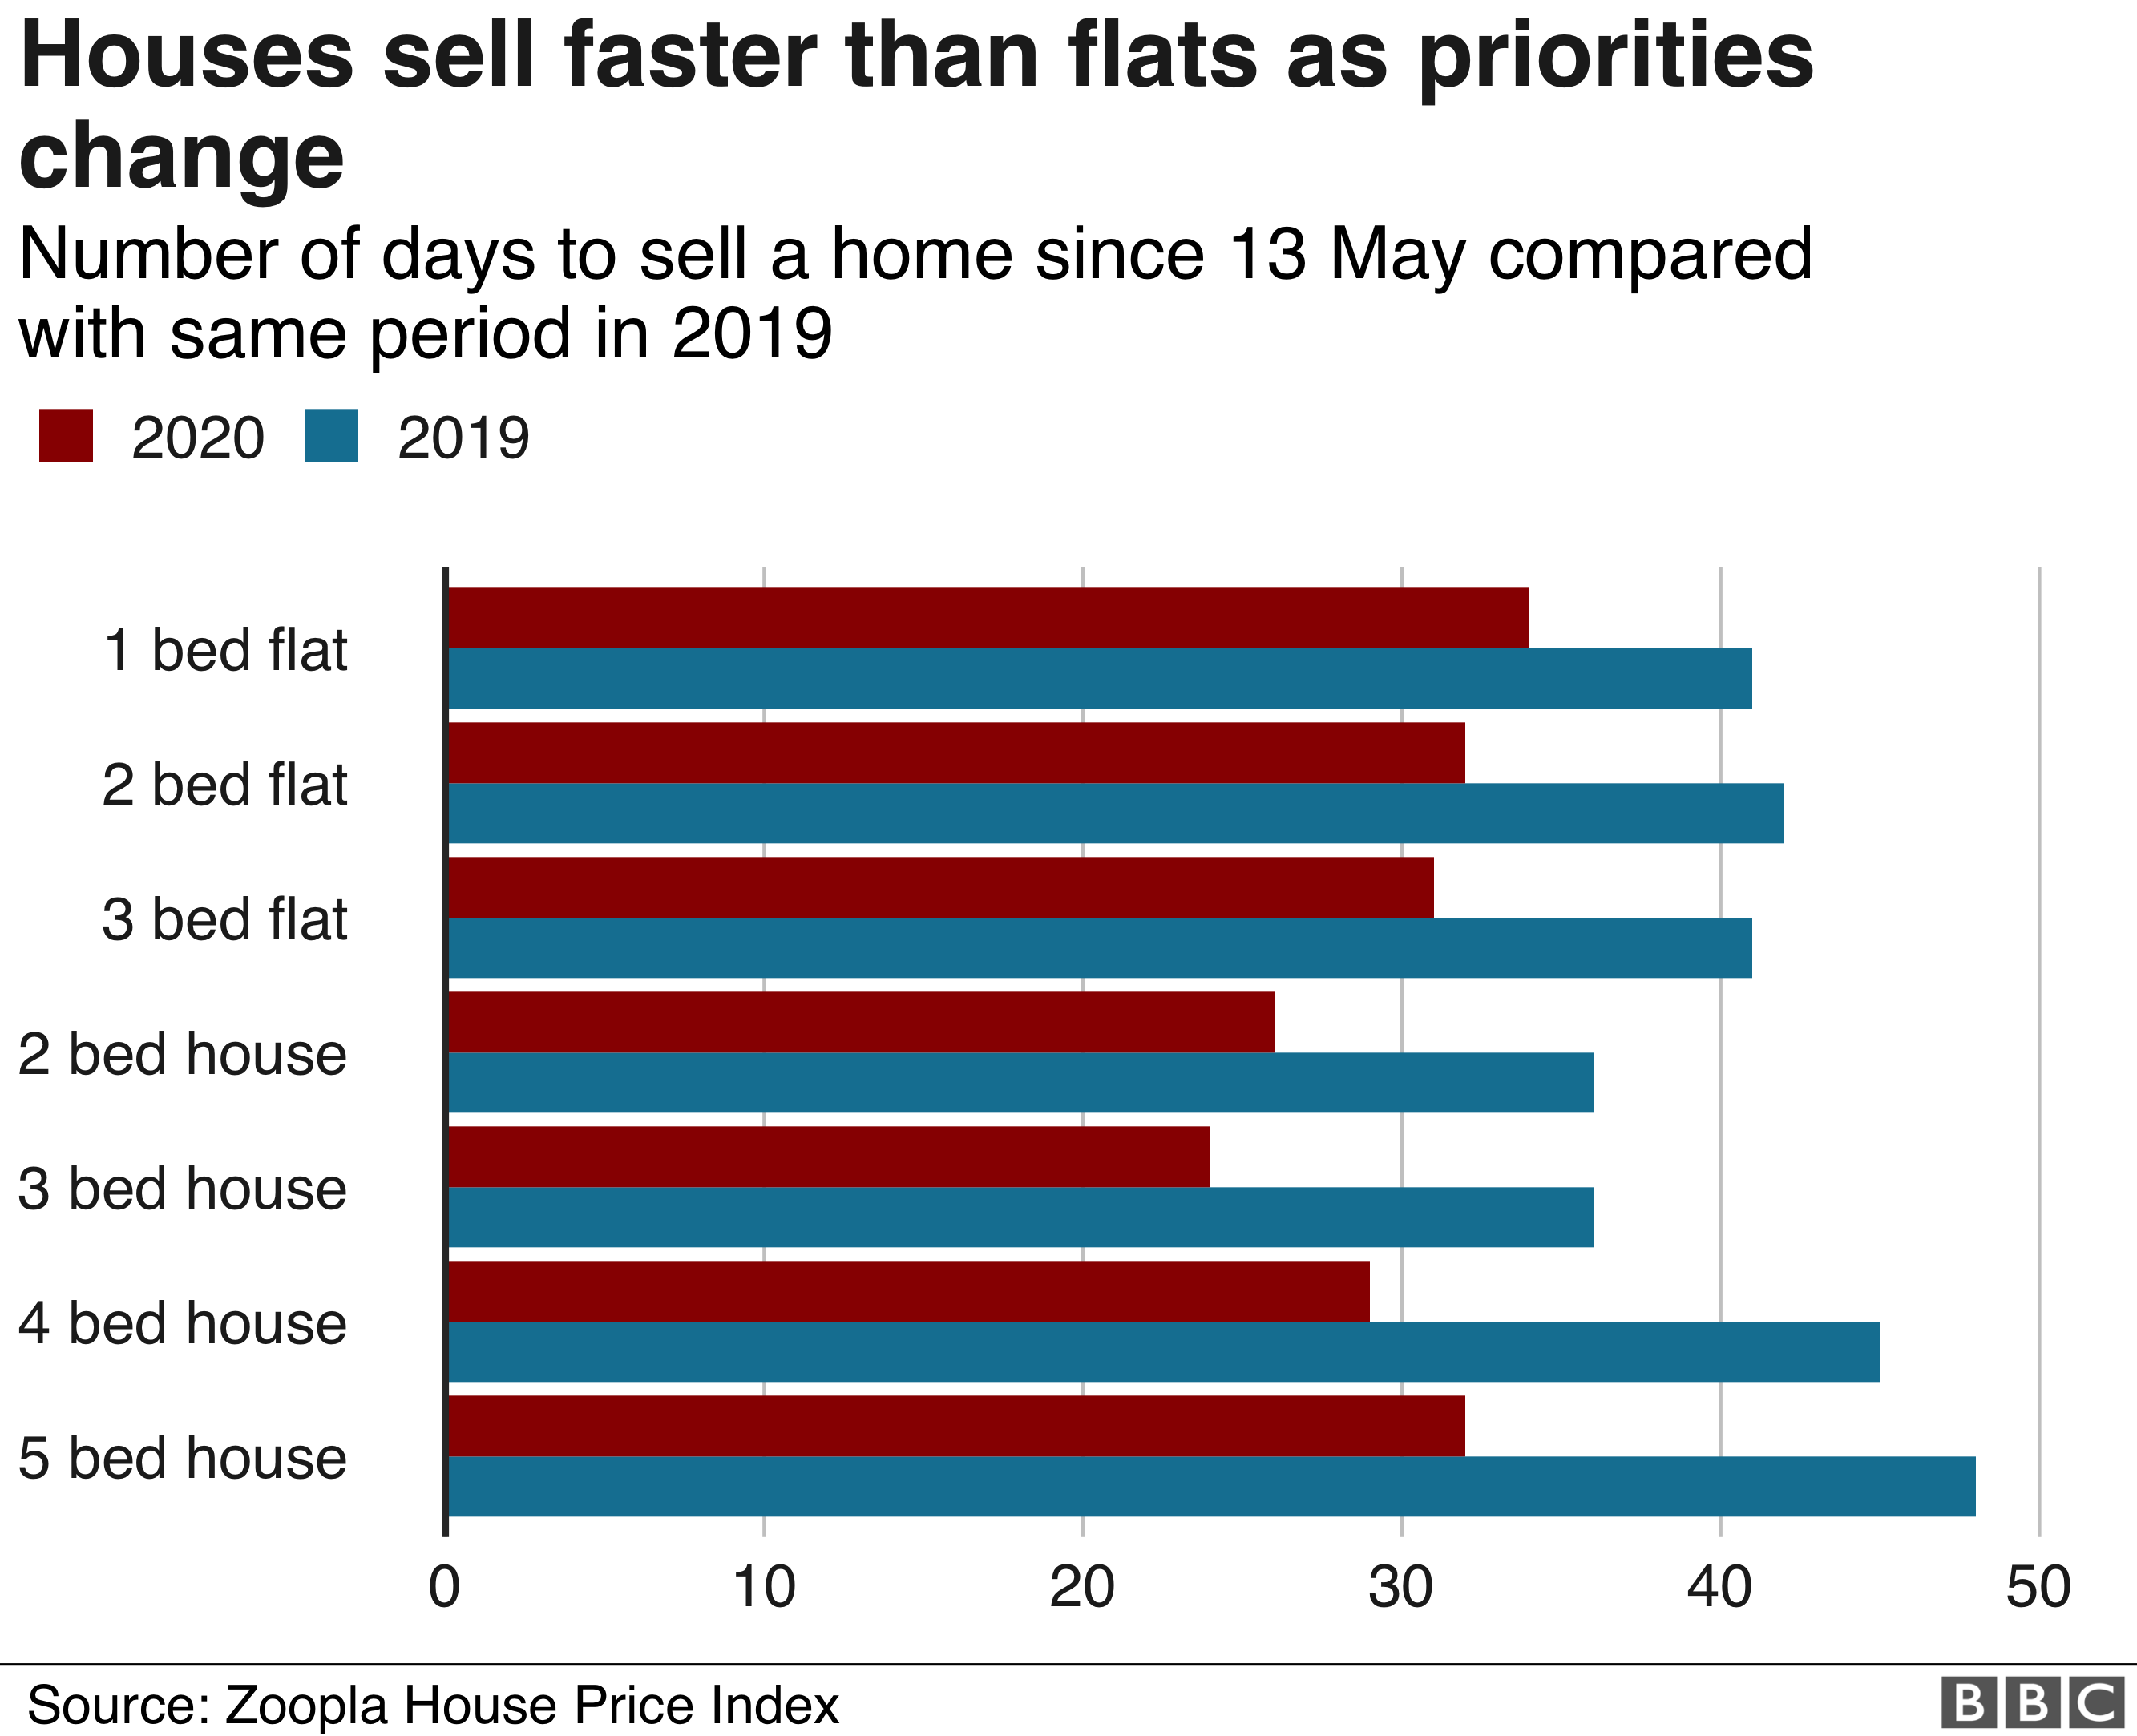 Chart showing how houses are now selling faster than flats as priorities change